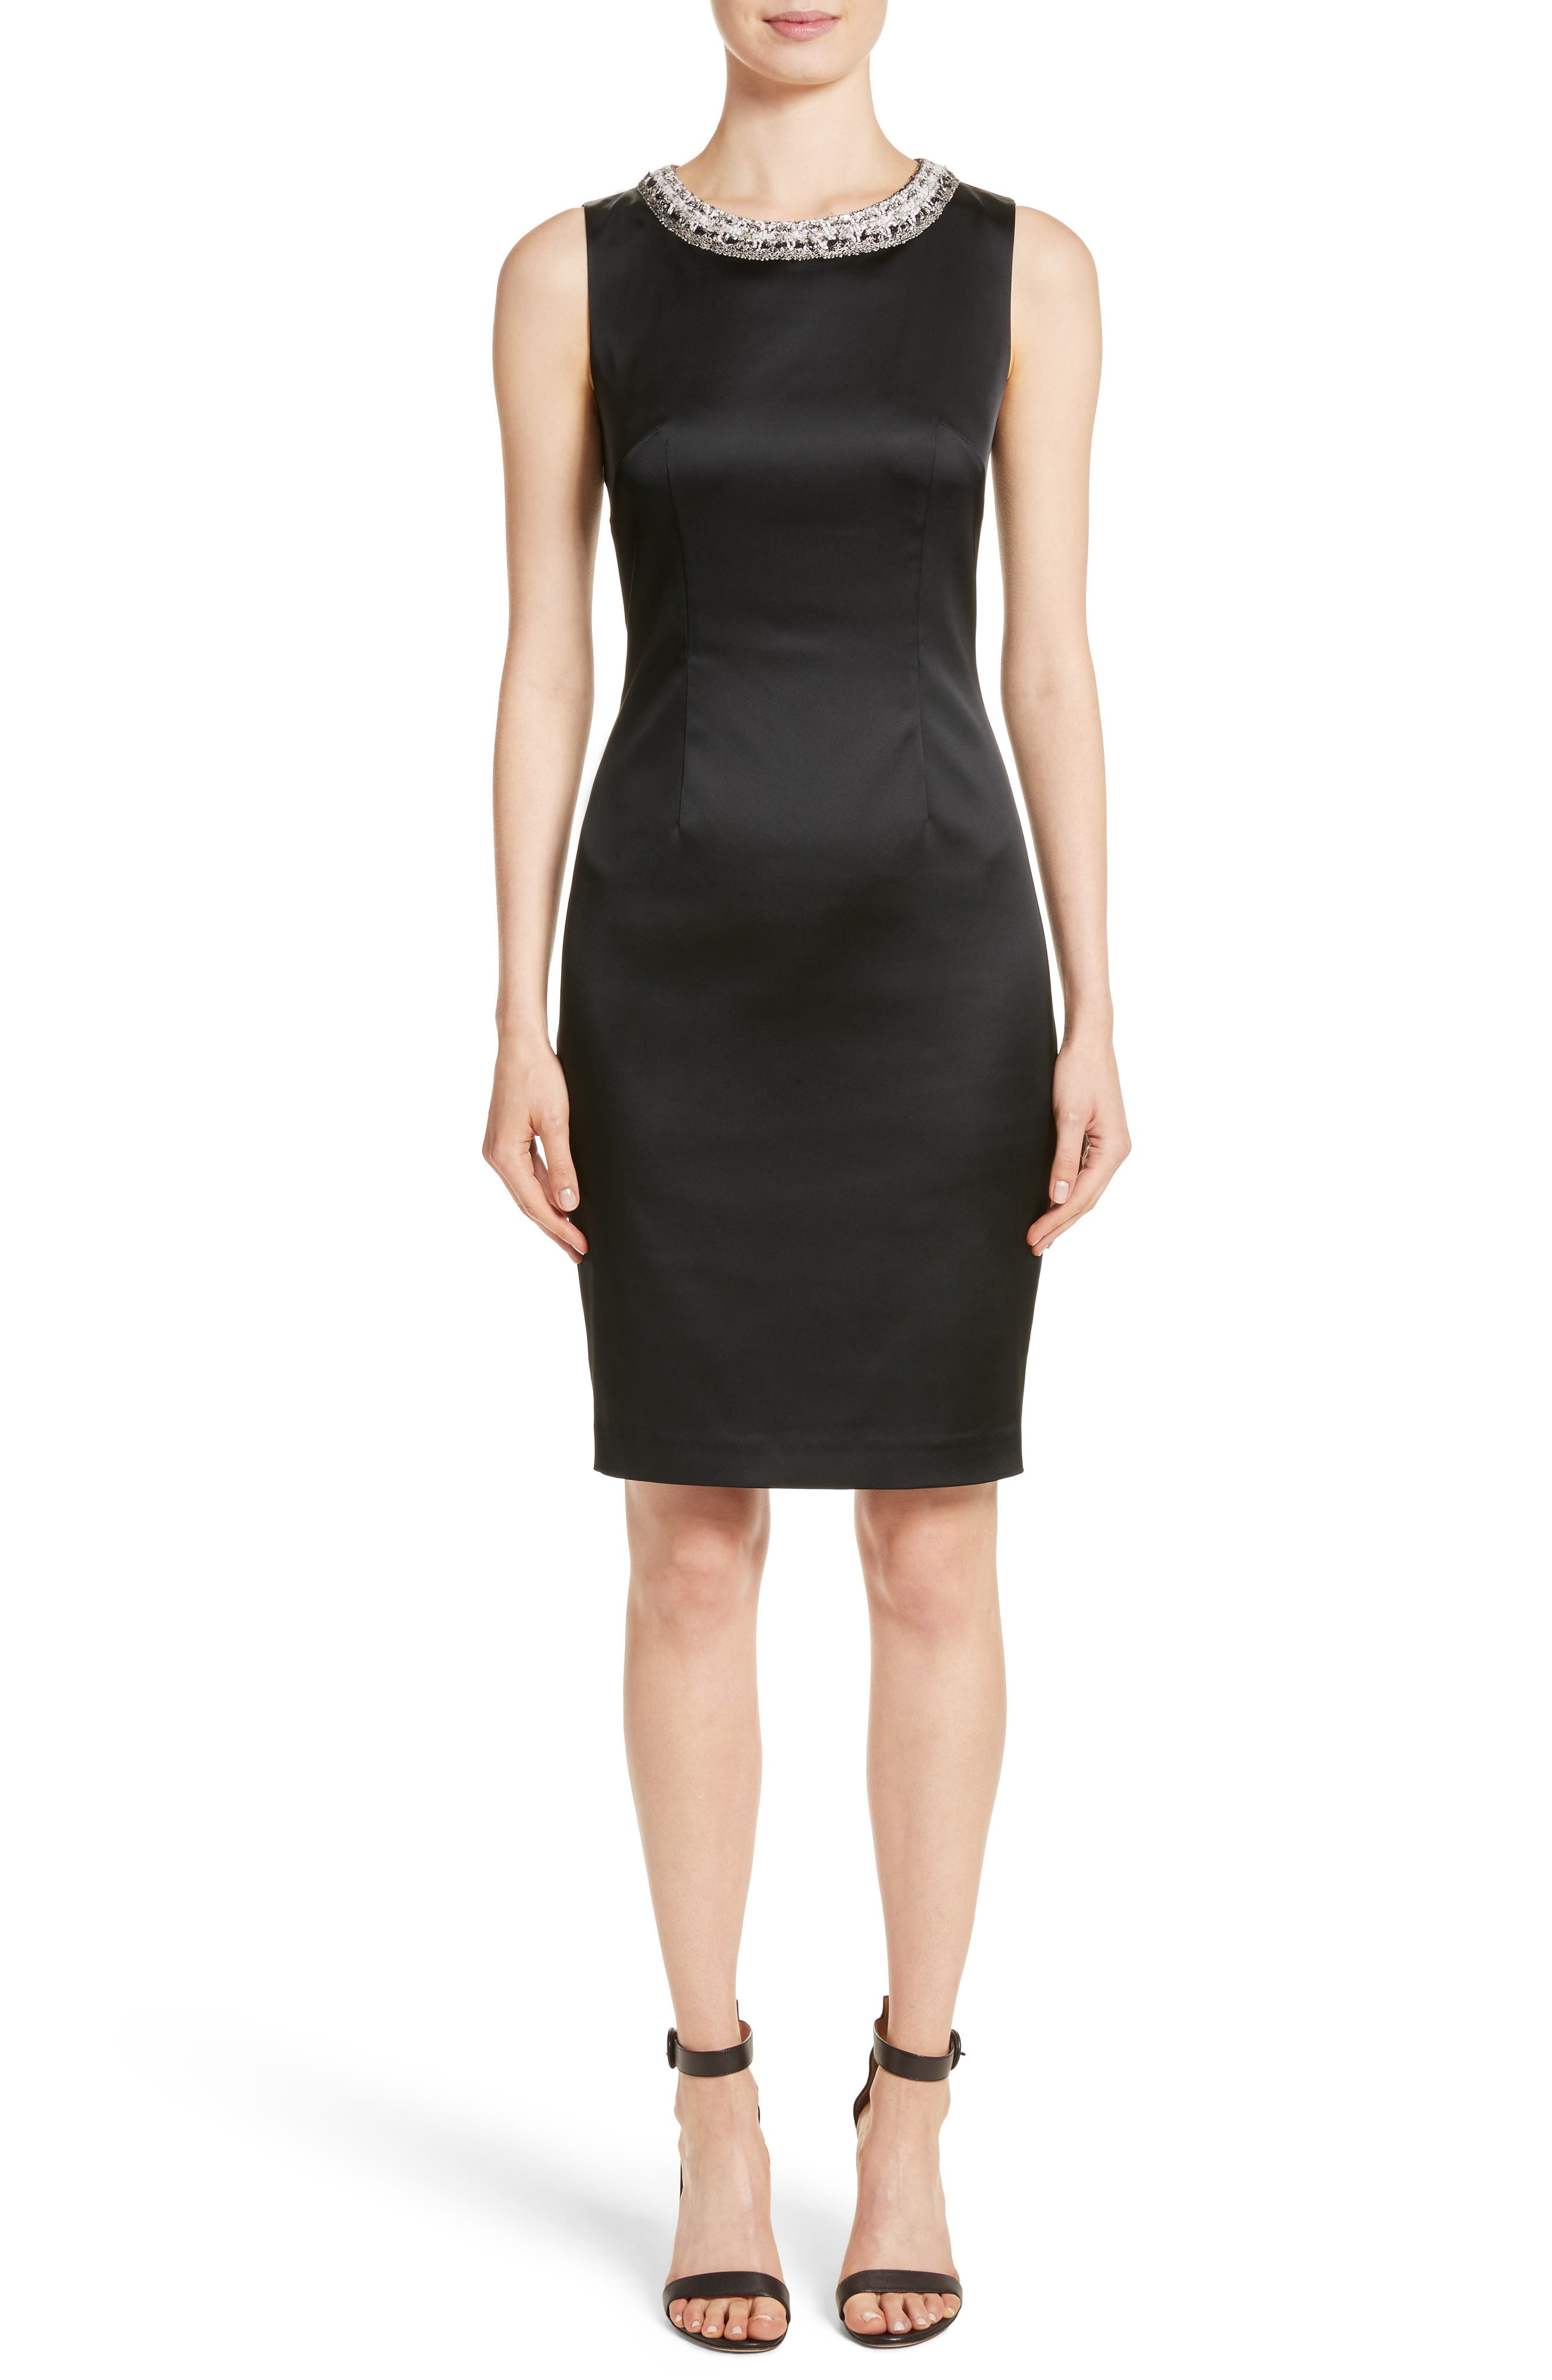 Alternate Image 1 Selected - St. John Collection Knit Trim Stretch Satin Dress